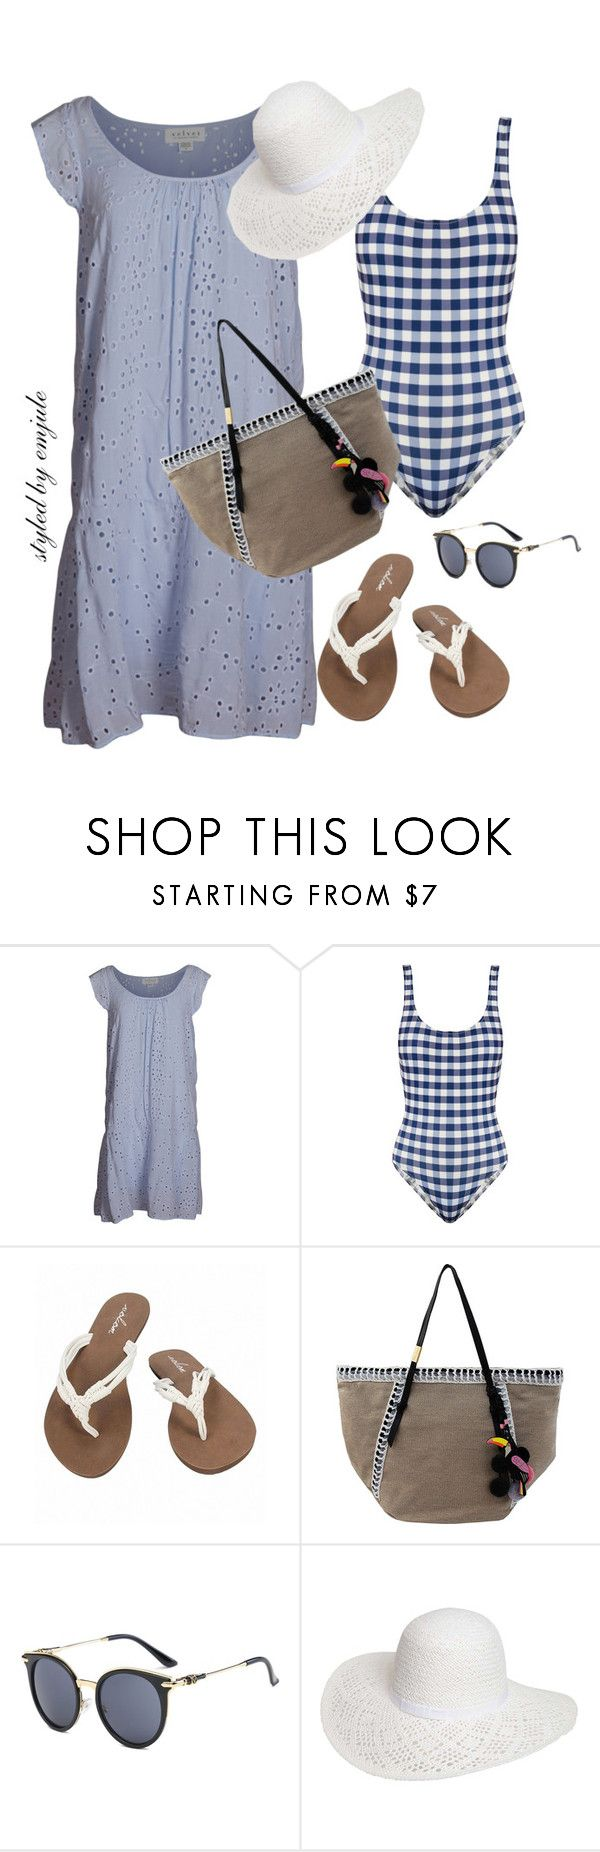 """Eyelet"" by emjule ❤ liked on Polyvore featuring Velvet by Graham & Spencer, Solid & Striped, Volcom, Foley + Corinna and Dorothy Perkins"